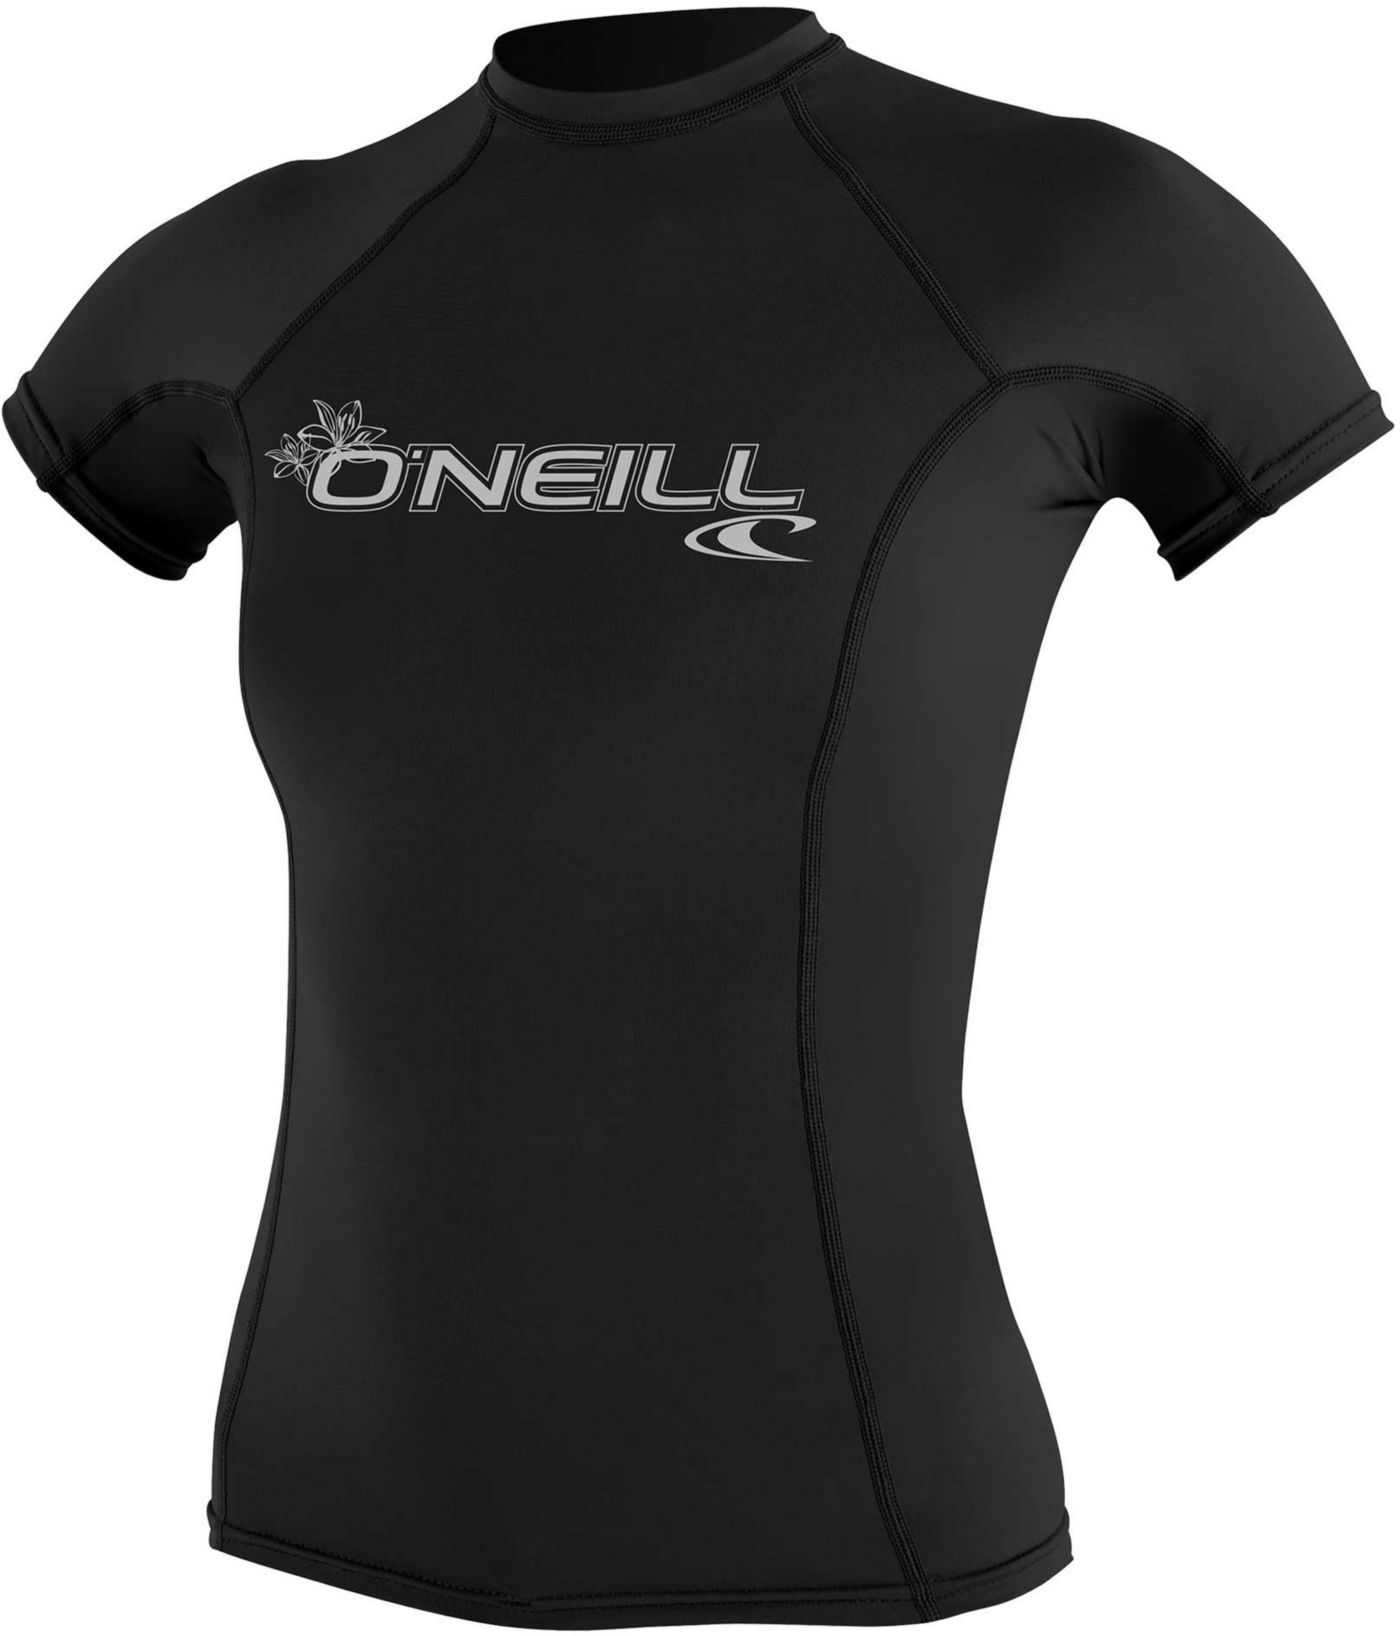 O'Neill Women's Basic Skins Short Sleeve Rash Guard